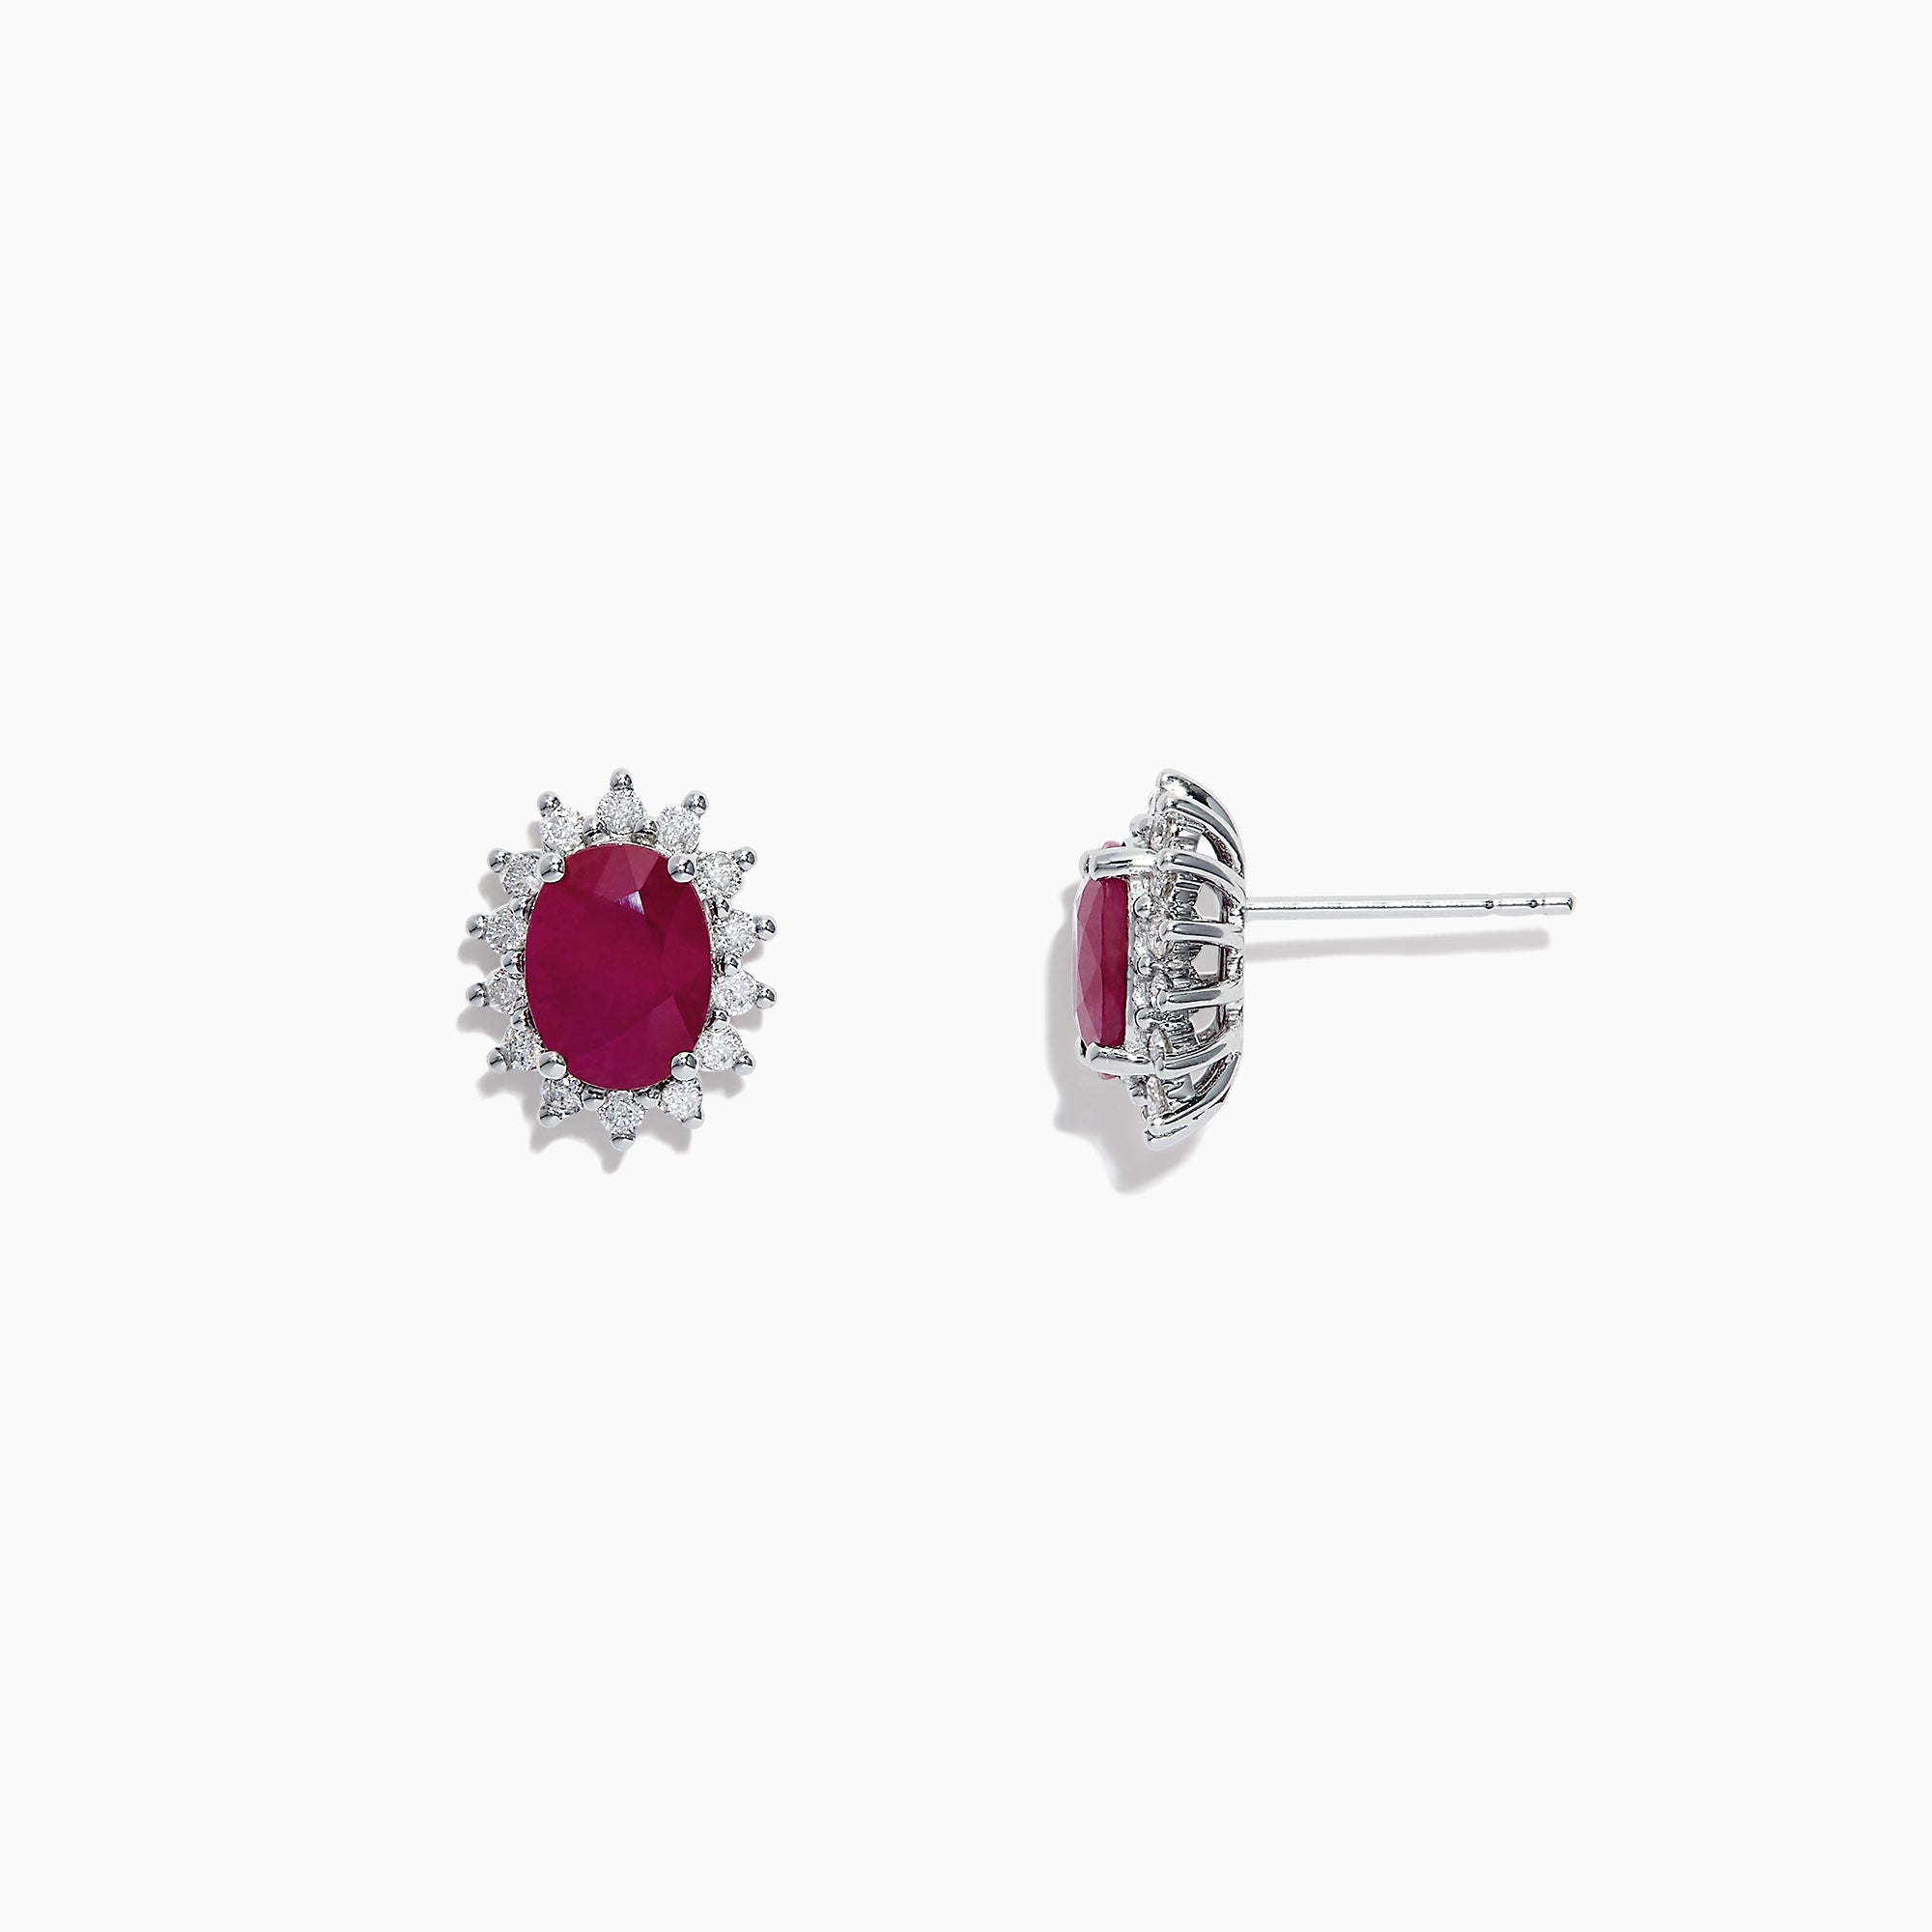 Effy Ruby Royale 14K White Gold Ruby and Diamond Earrings, 3.26 TCW